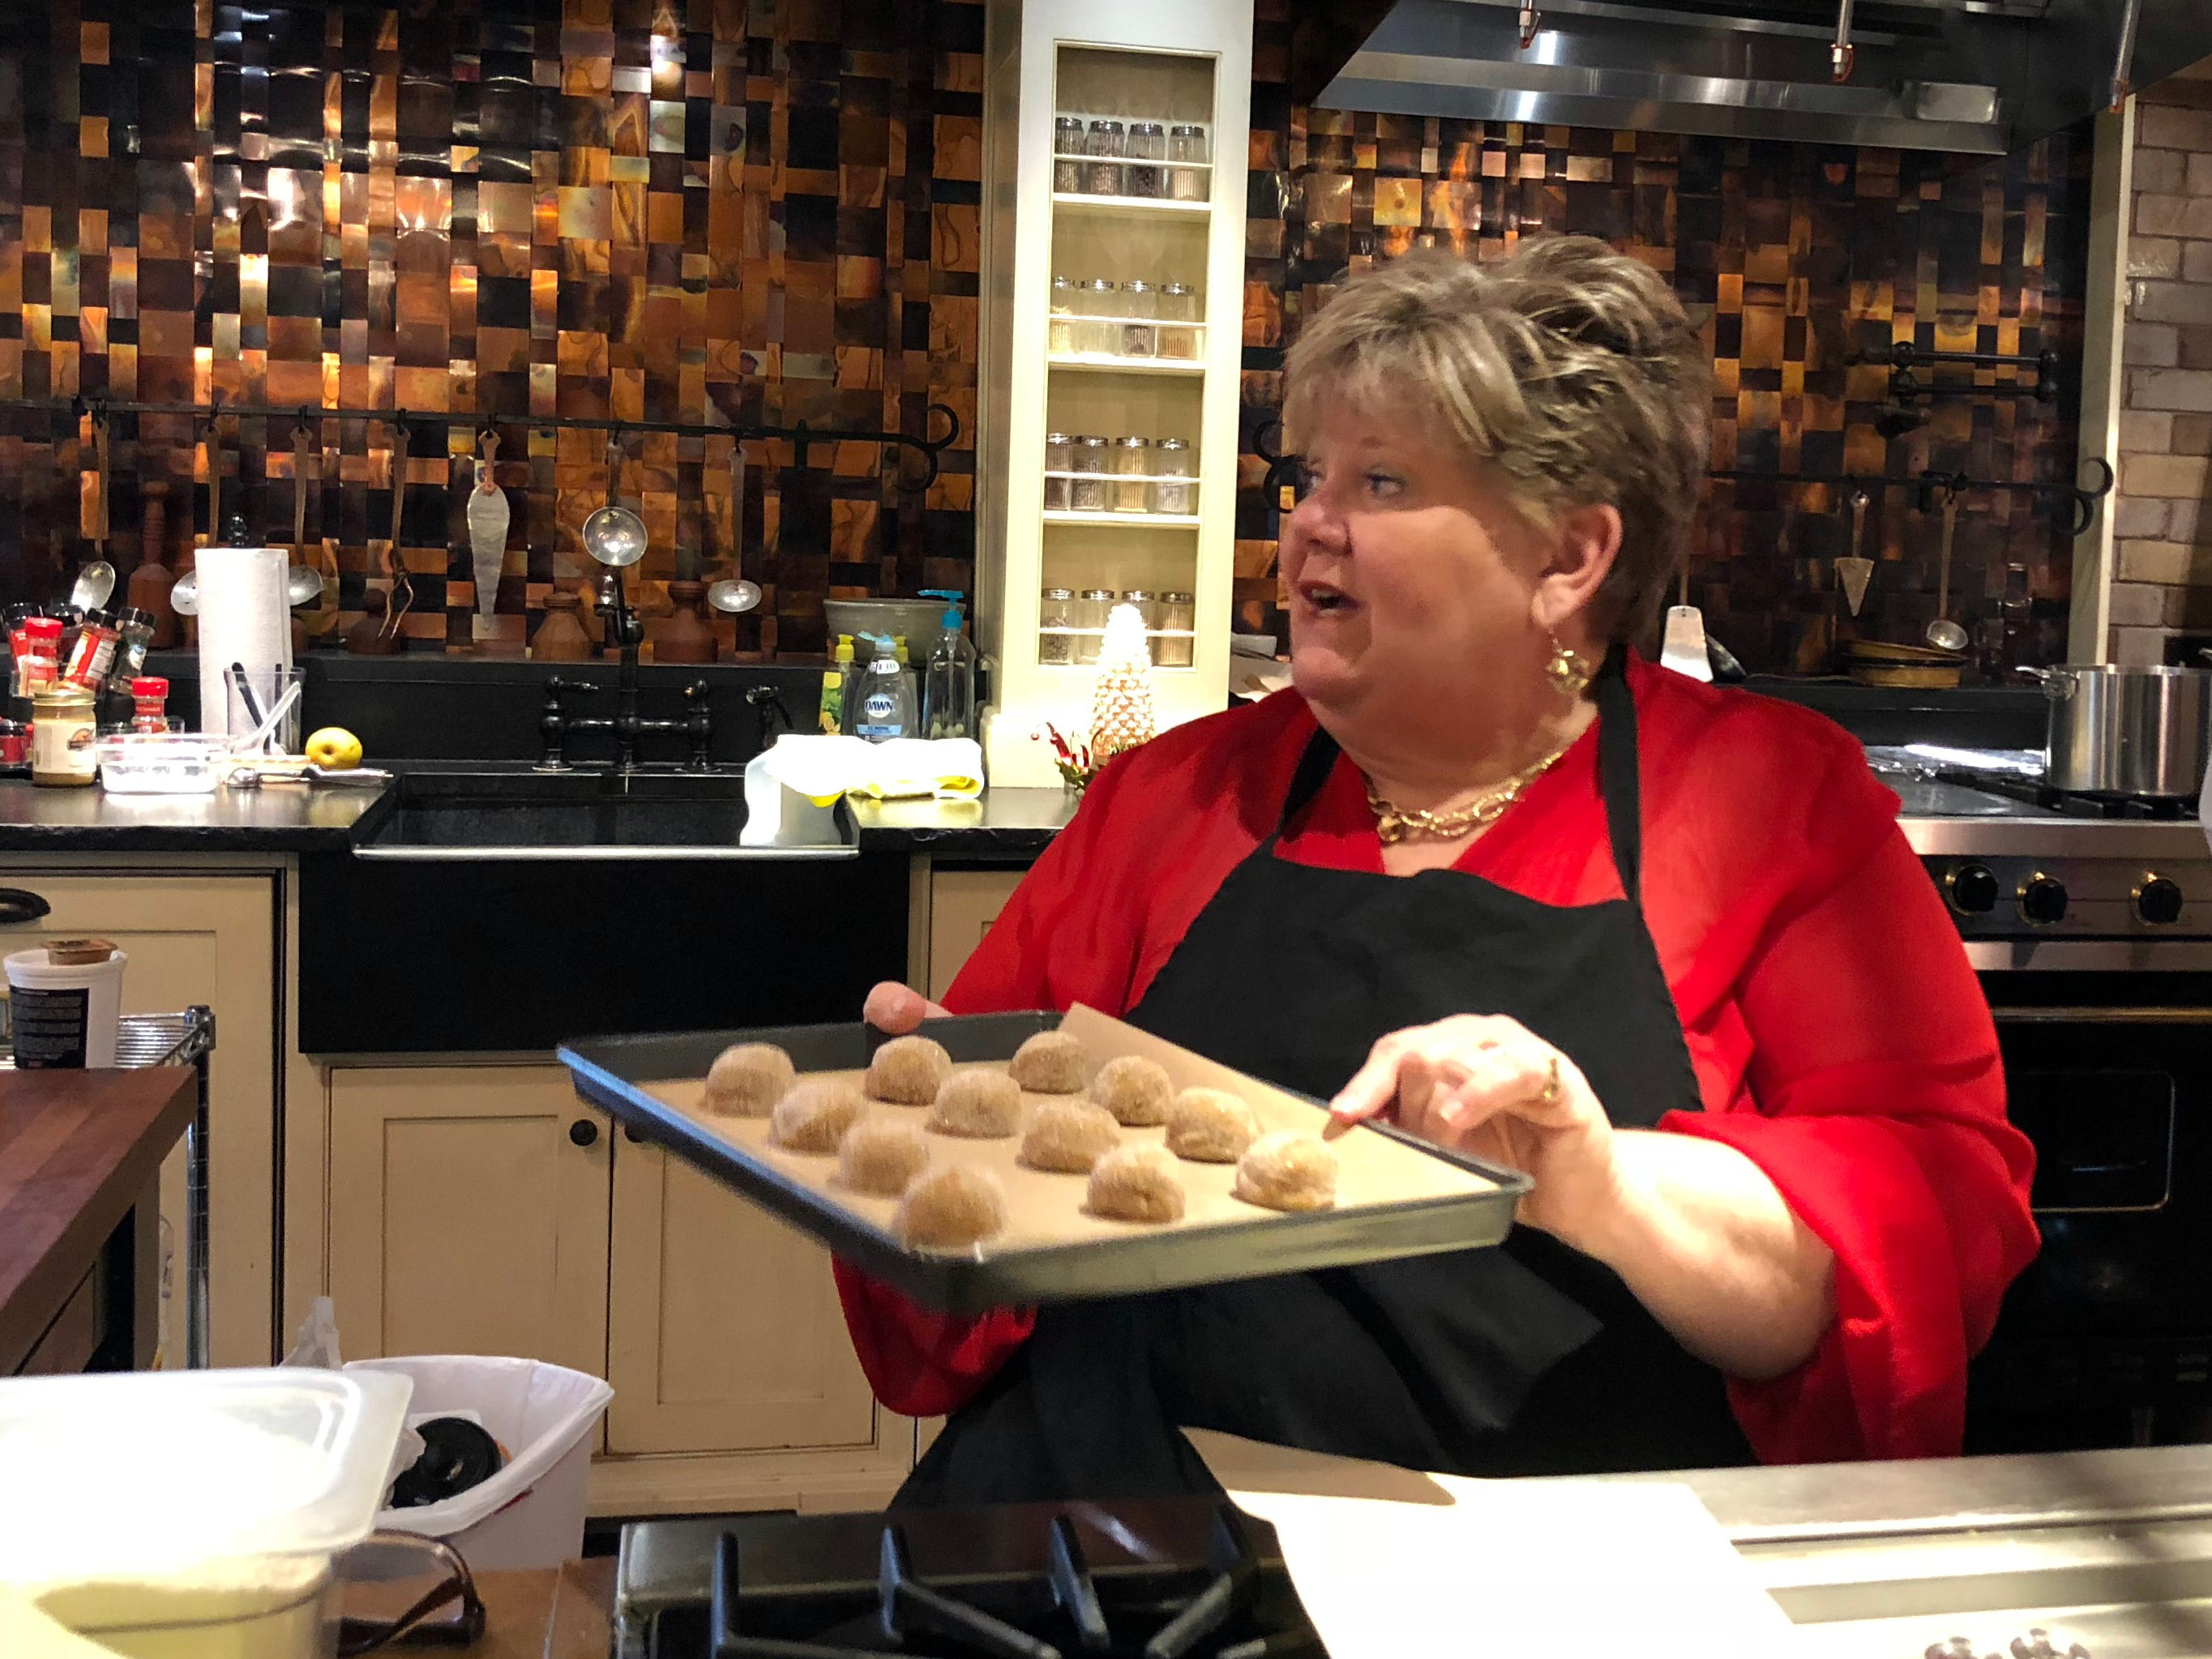 Visitors can even learn how to make their own holiday treats, such as Christmas cookies and decadent hot chocolate, at the park's Culinary Craft School.